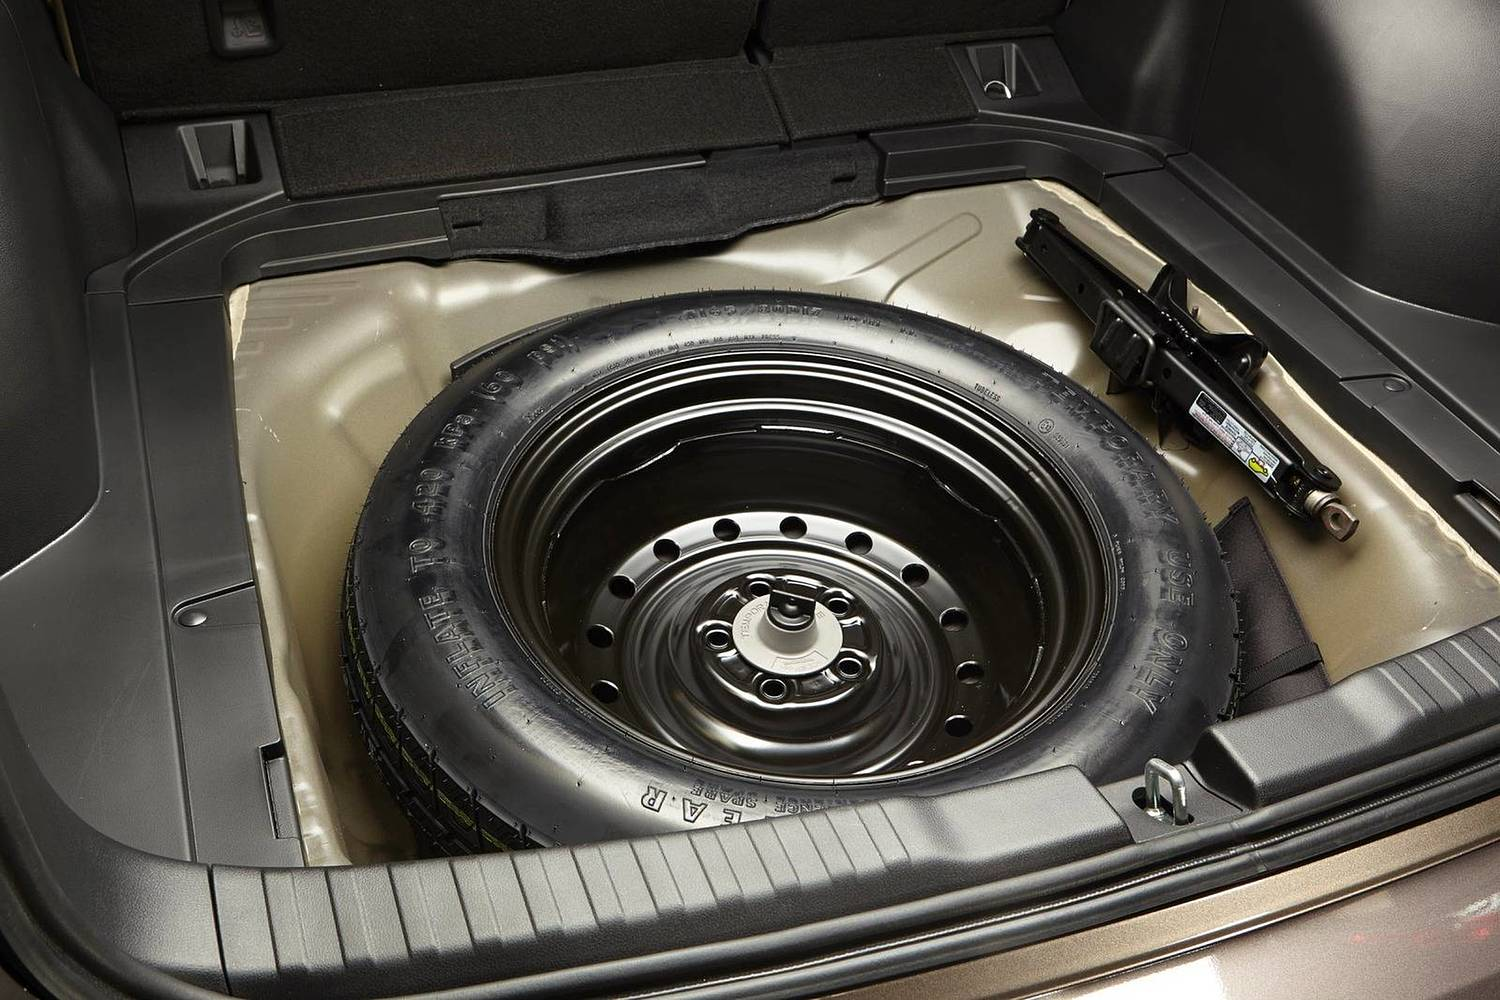 Honda CR-V Touring 4dr SUV Spare Tire Detail (2015 model year shown)